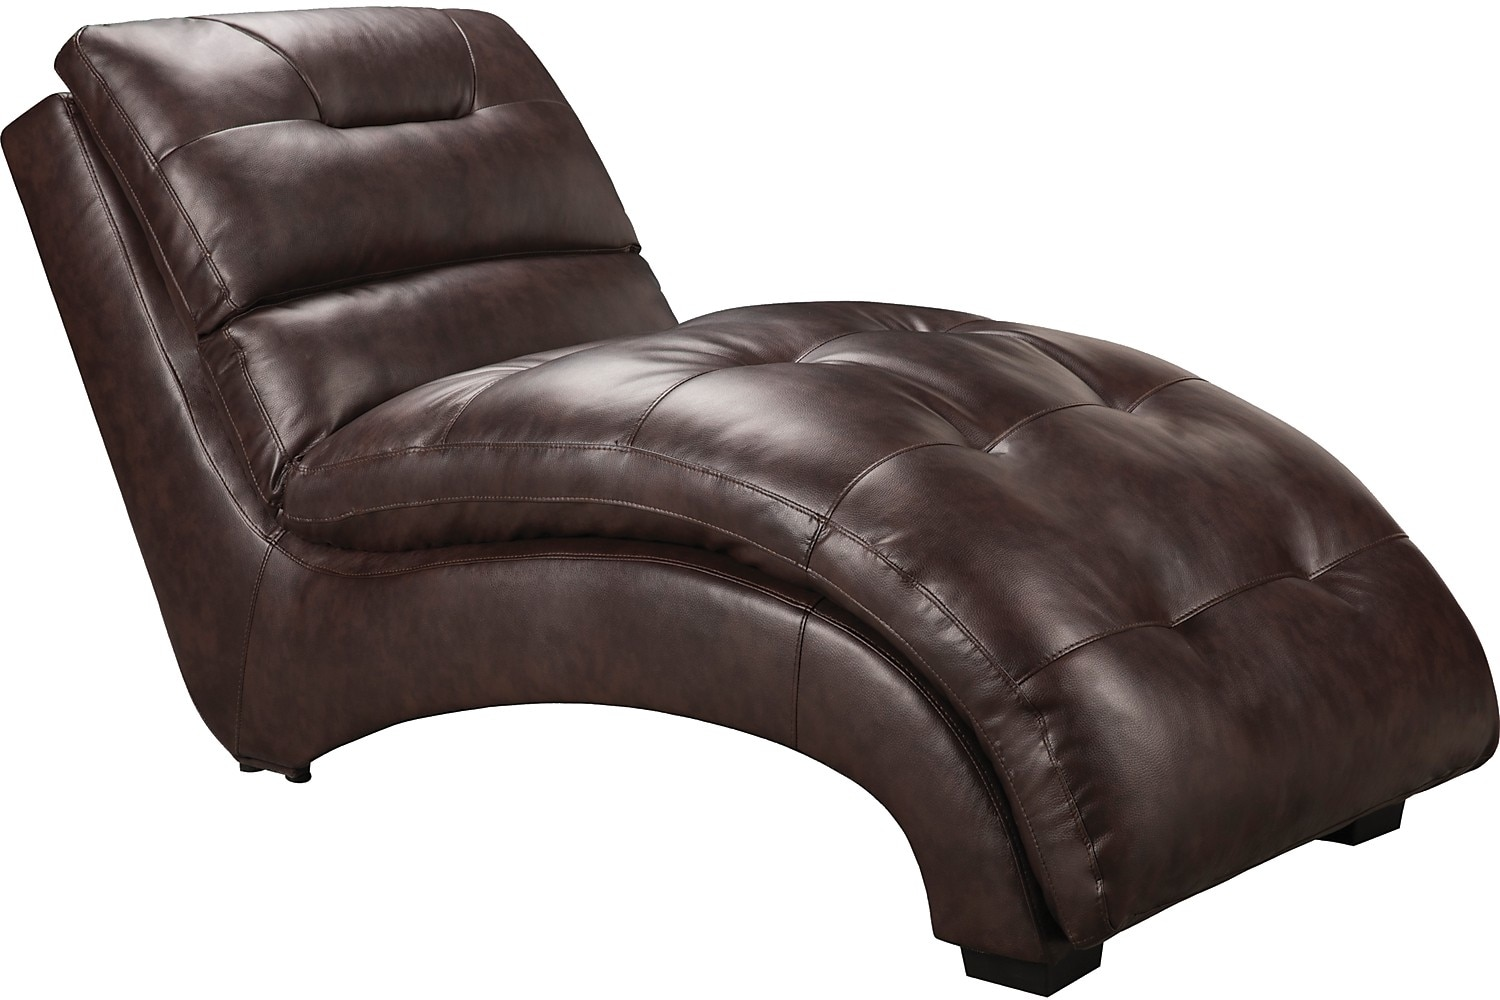 Living Room Furniture - Coleford Chaise